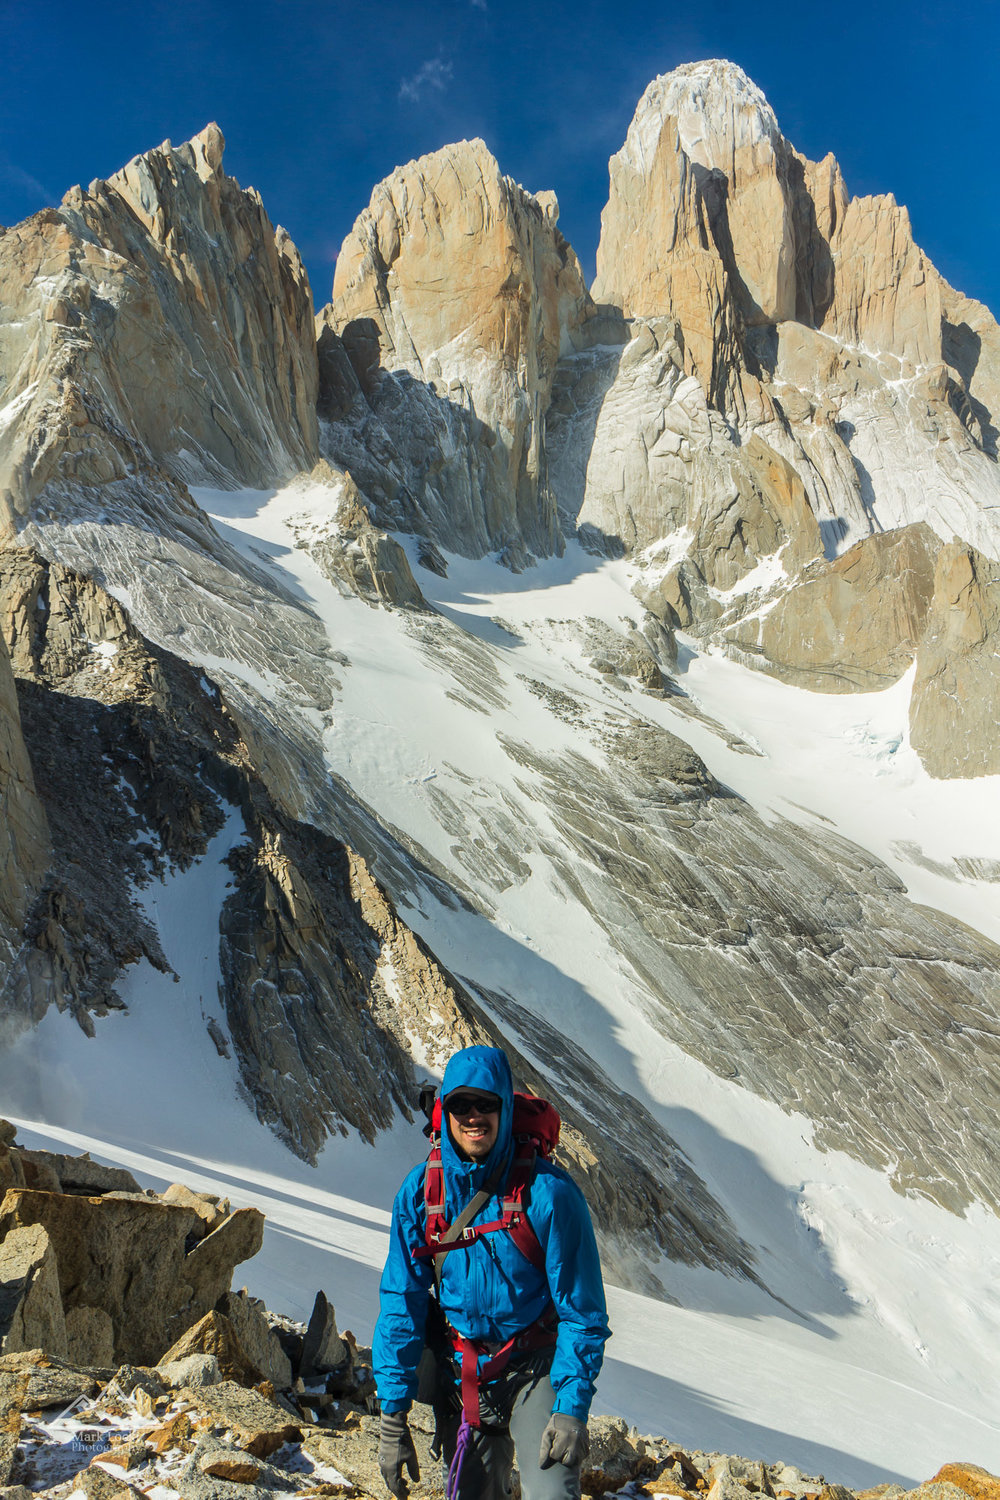 Me beneath the Fitz Roy Massif in Argentinian Patagonia - the peaks that made me want to take up rock climbing